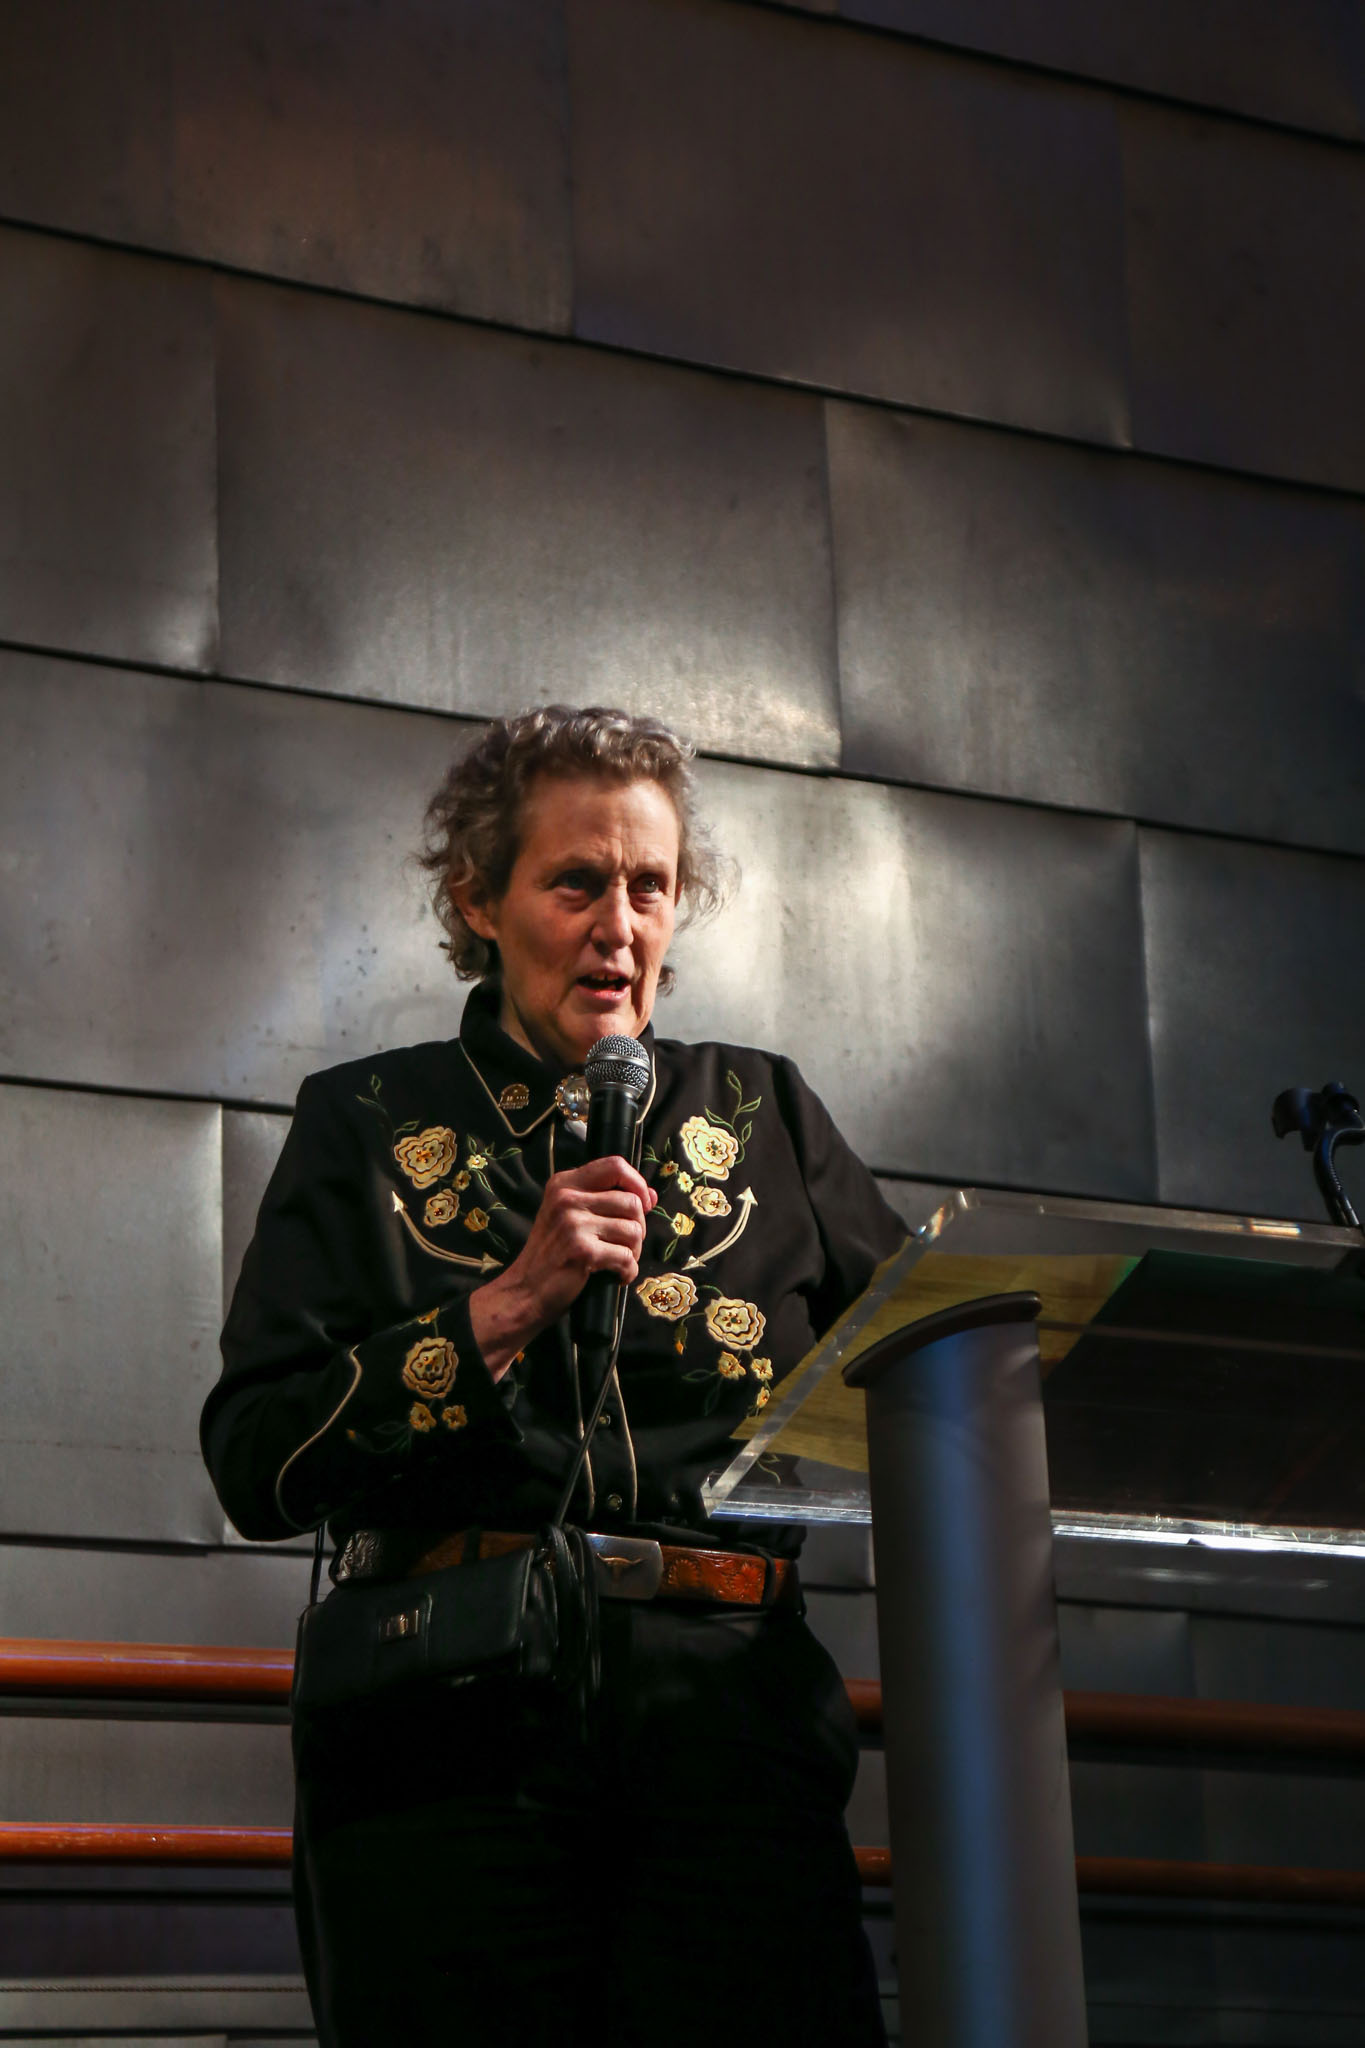 Temple Grandin speaking at Catwalk to Camp | Durham Event Photographer | By G. Lin Photography